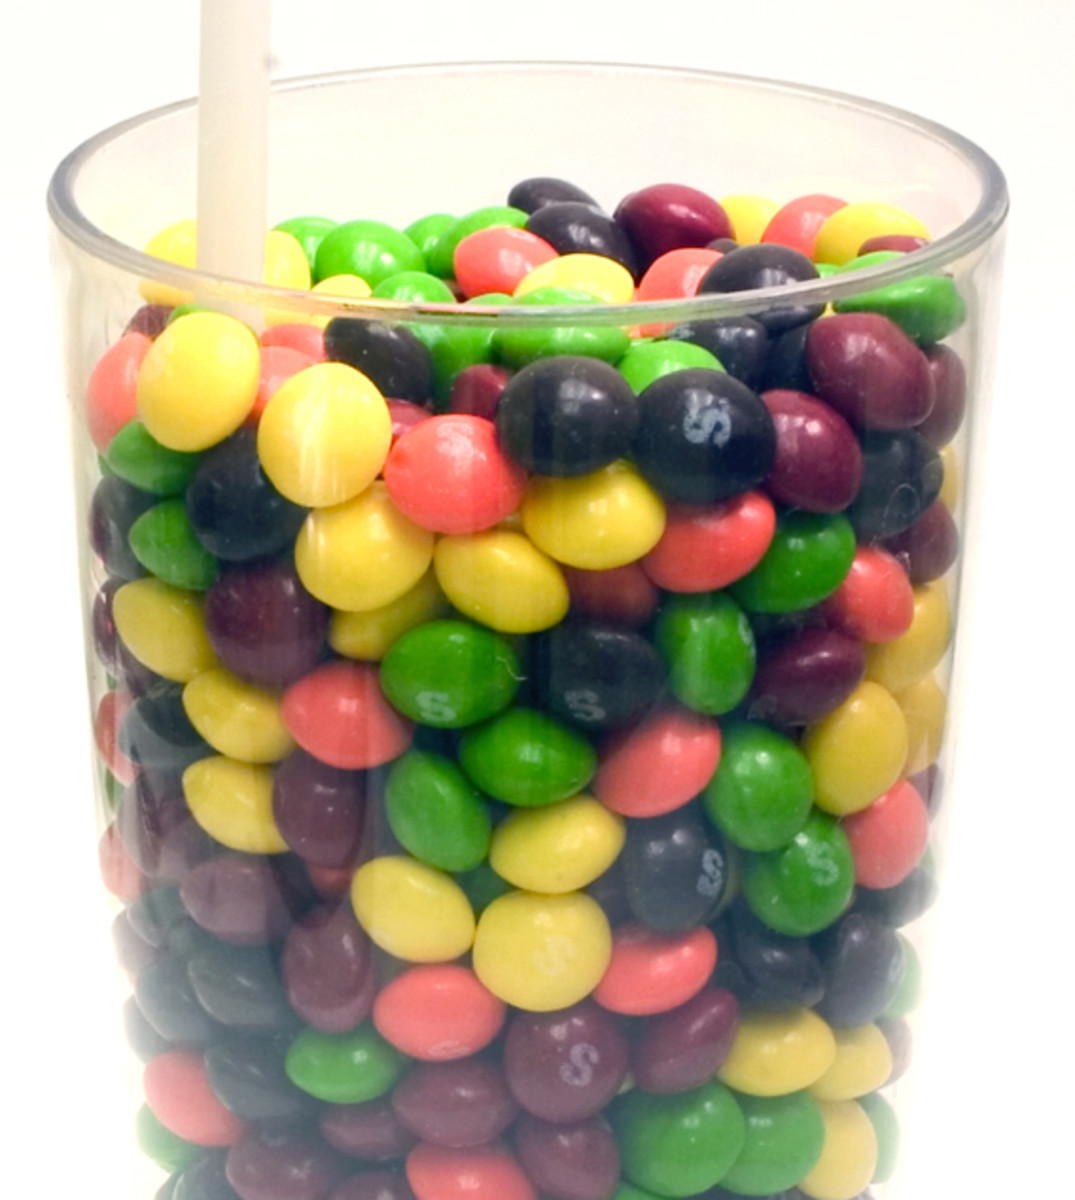 The clustering illusion explains why we often see patterns in randomly-produced objects, such as a bowl of candy.